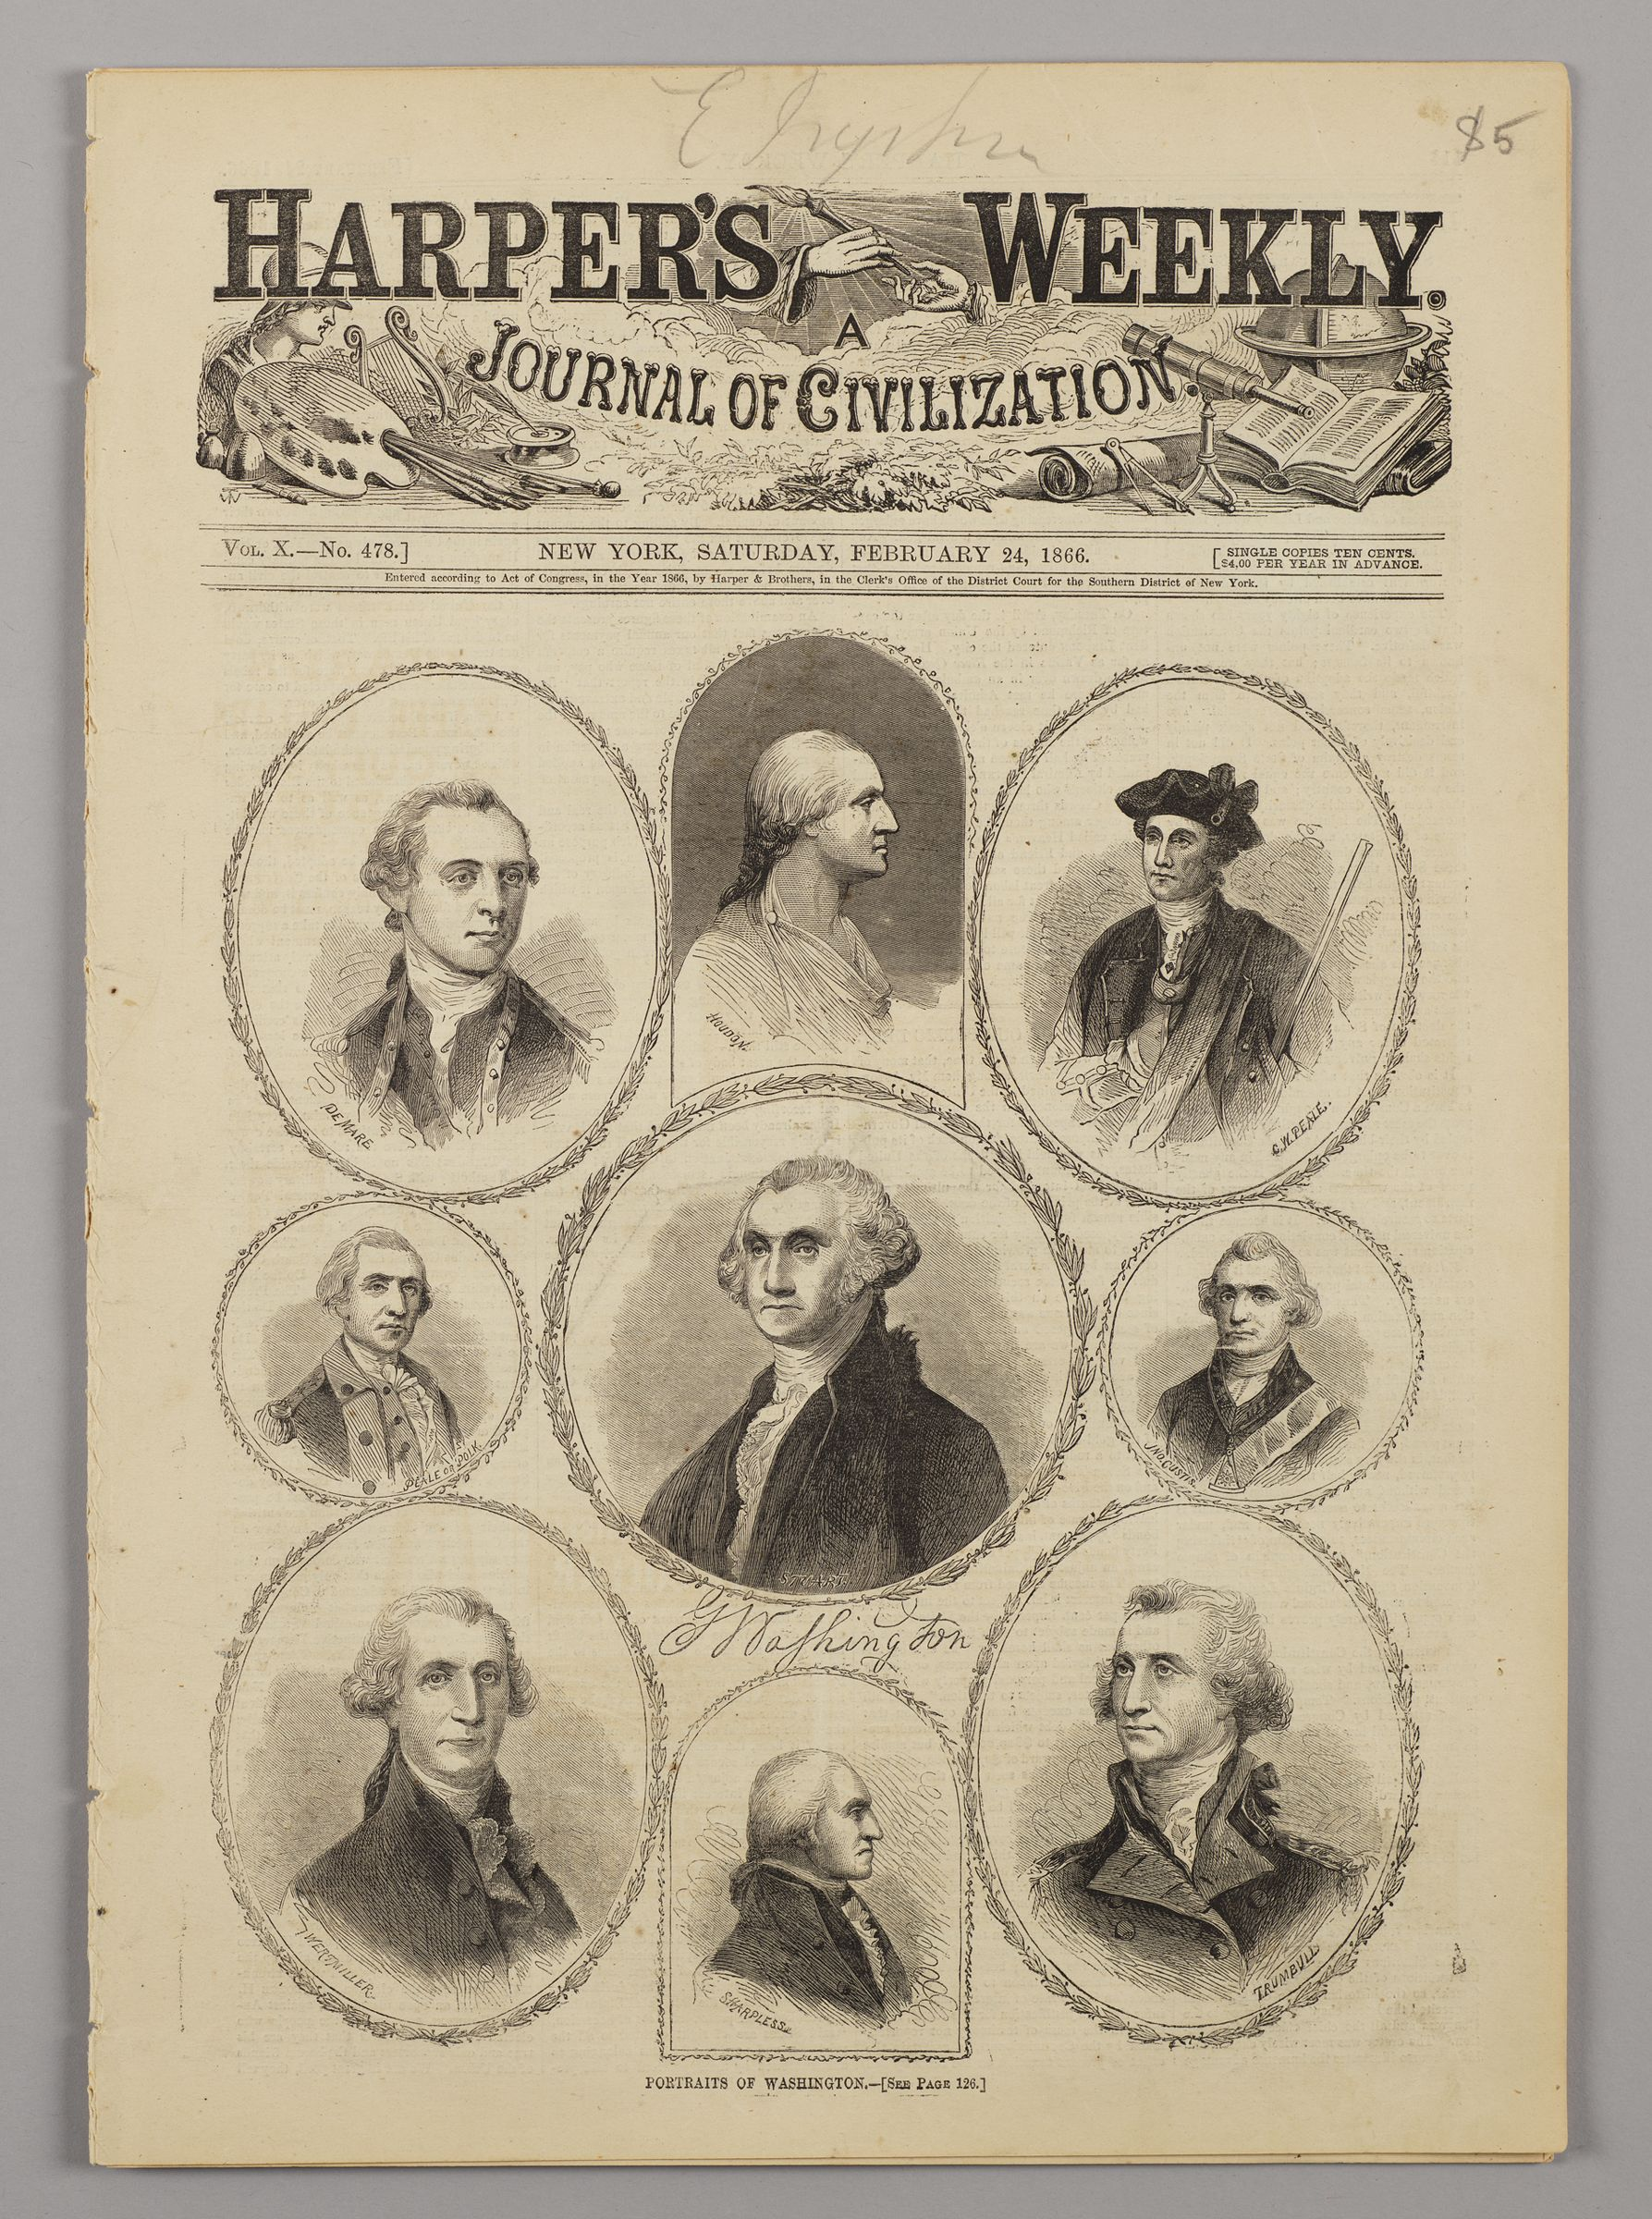 Harper's Weekly, Vol. X, No. 478